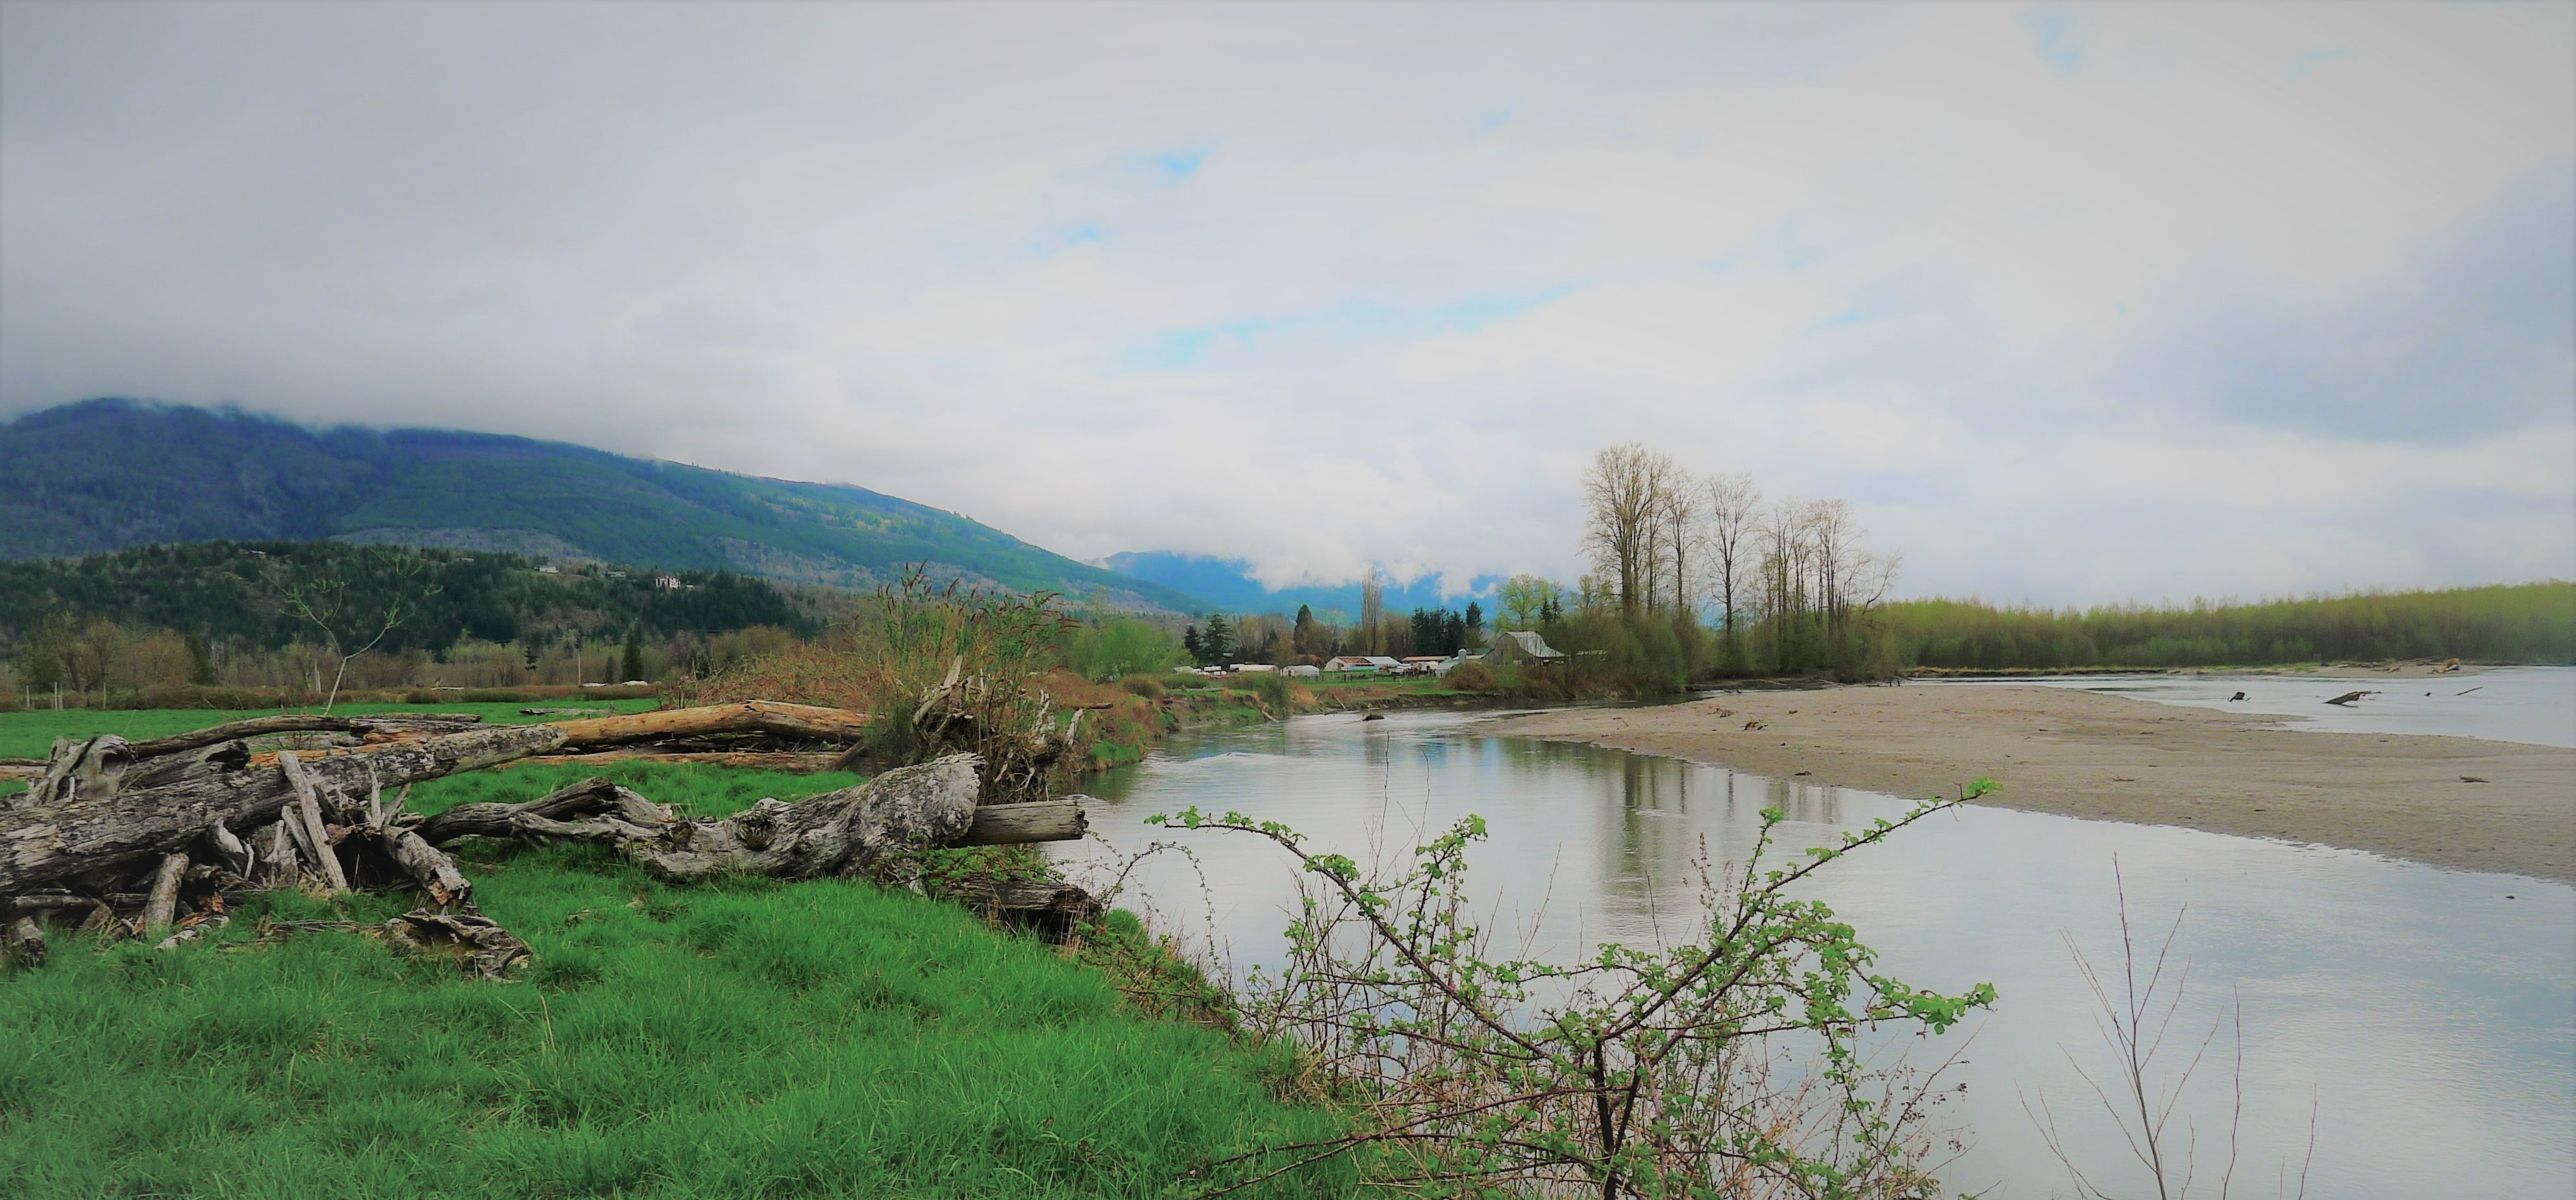 Utopia Conservation Area protects over 87 acres of creeks, wetlands and forested habitat along the Skagit River. Photograph credit: Skagit Land Trust staff.